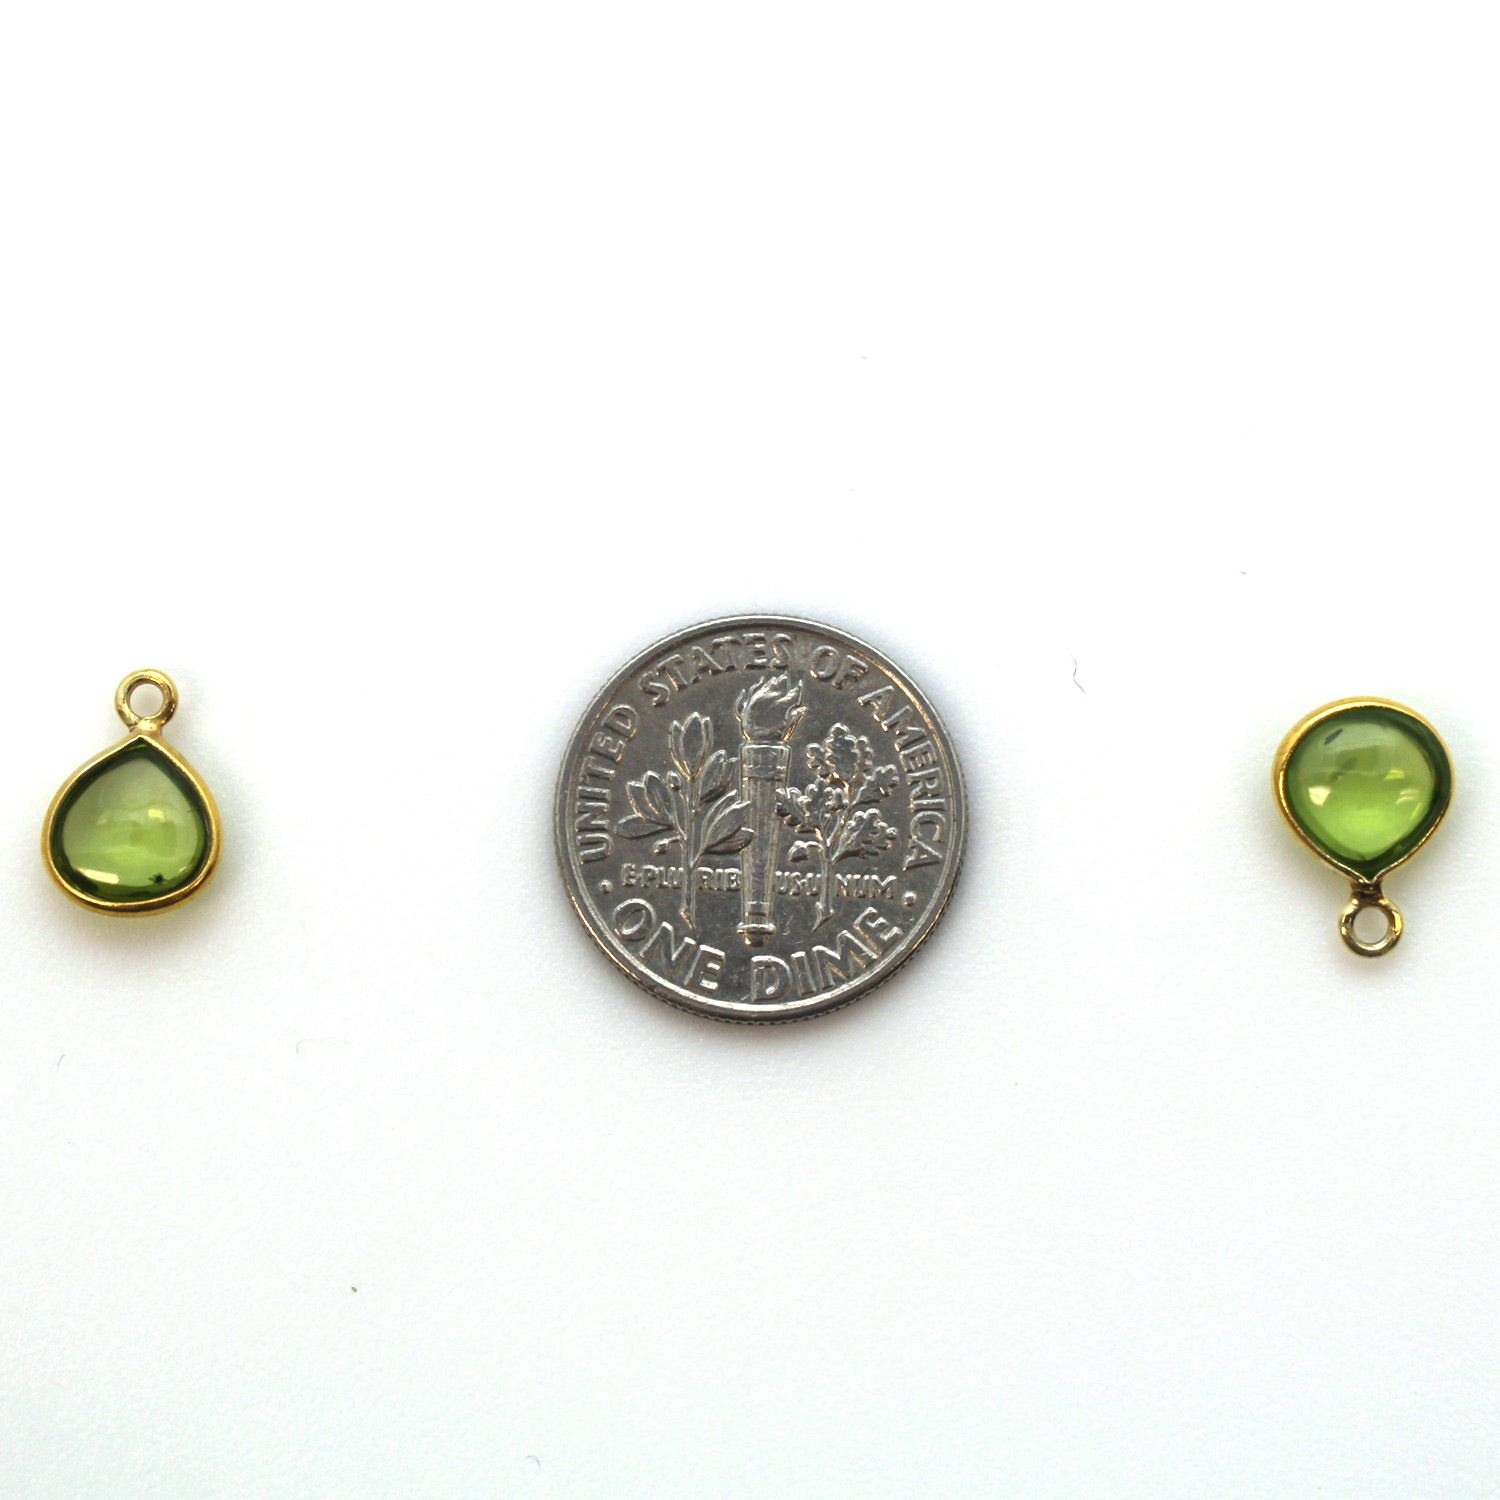 Bezel Charm Pendant - Gold Plated Sterling Silver Charm - Natural Peridot - Tiny Heart Shape -7mm